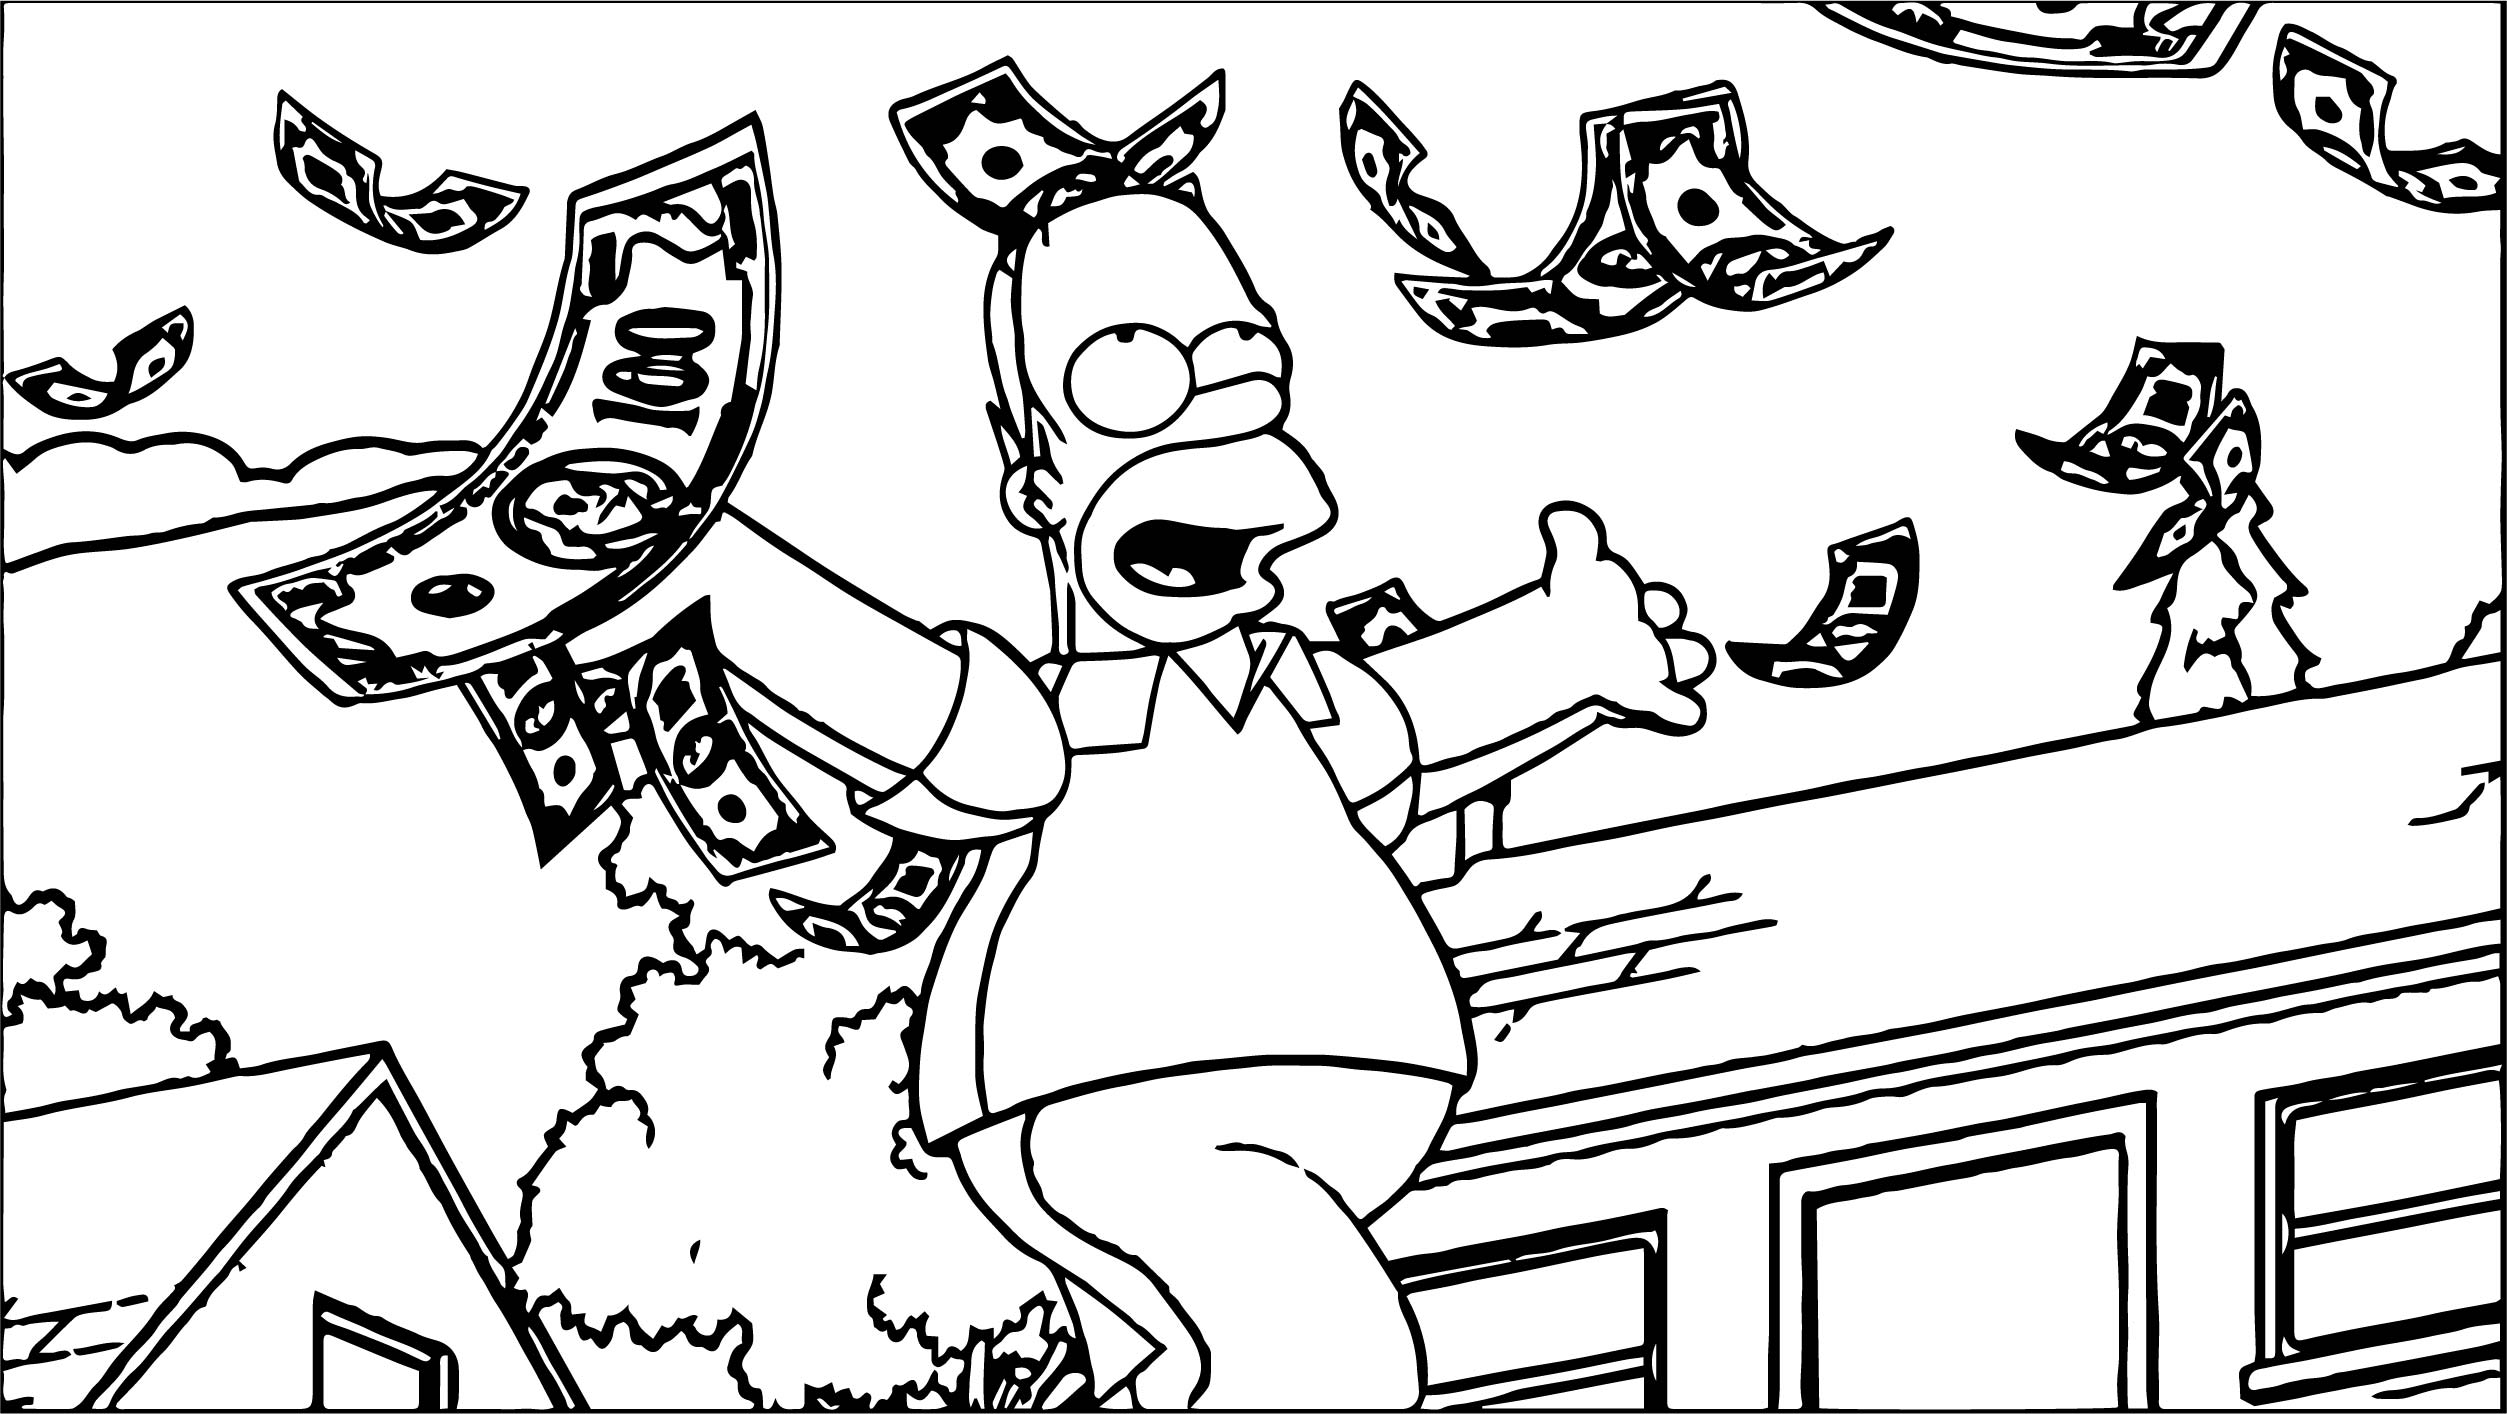 simpsons money coloring page